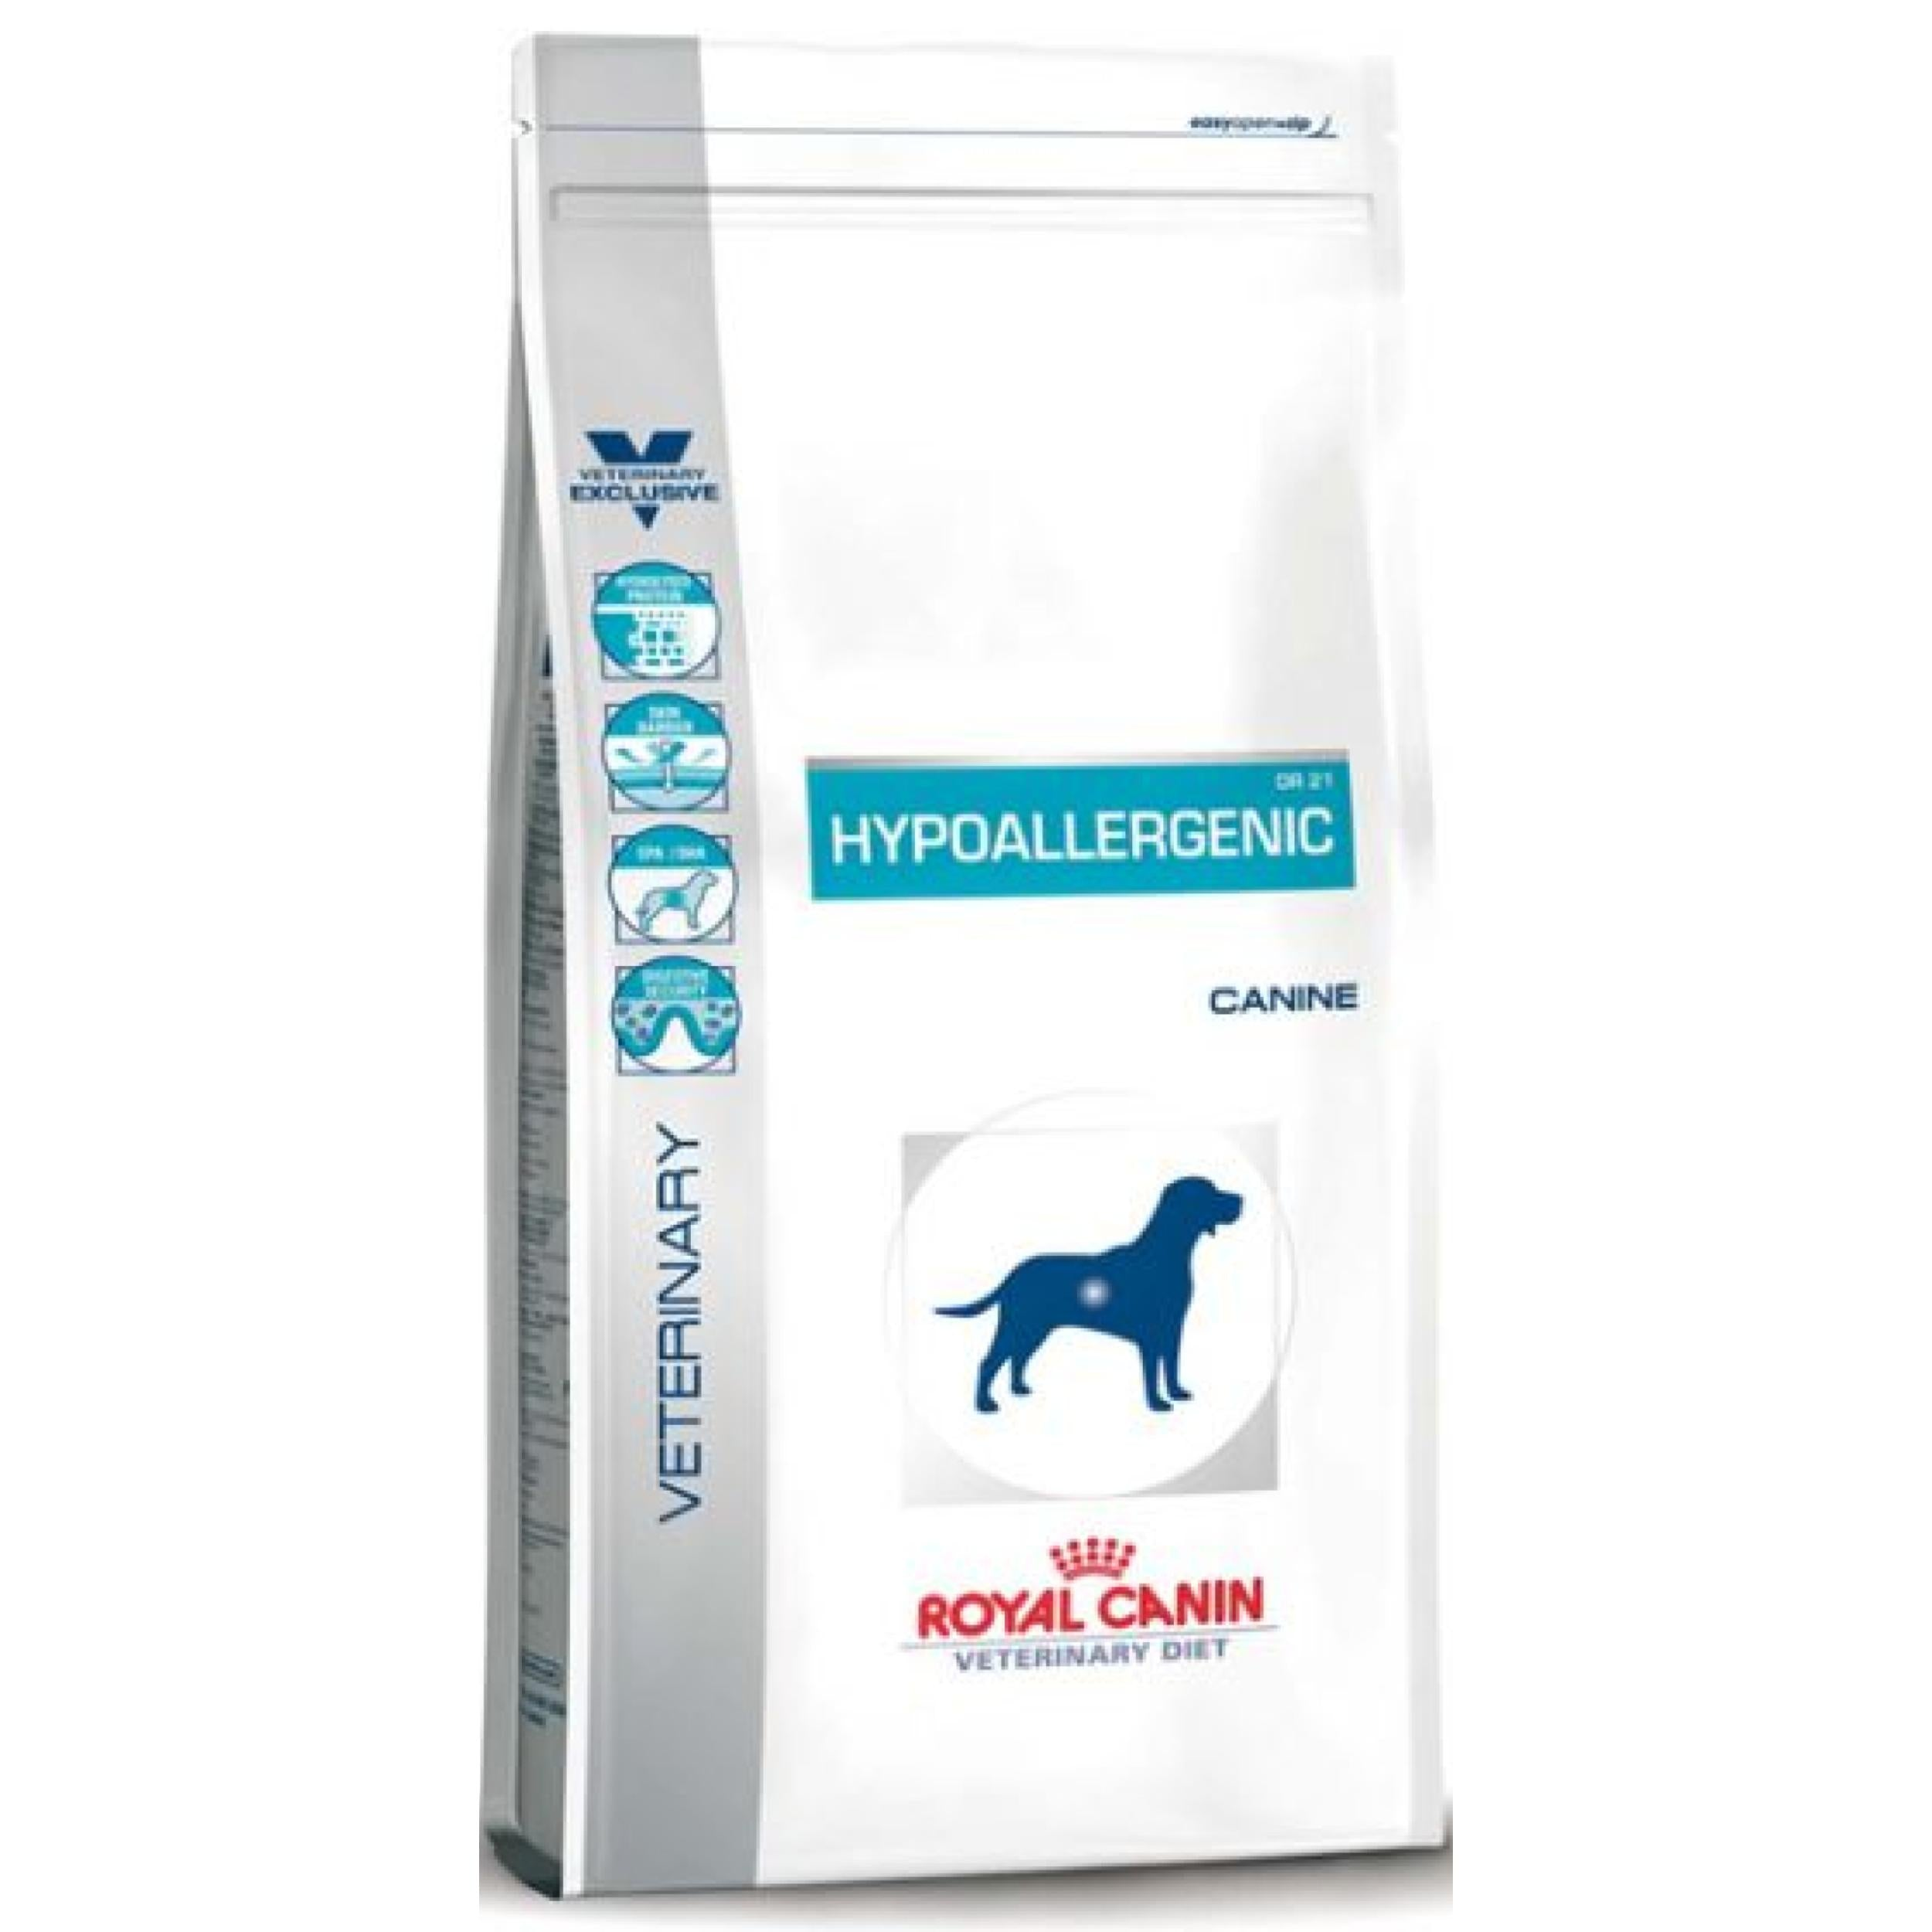 Royal Canine Hypoallergenic Dog Food - Poochles